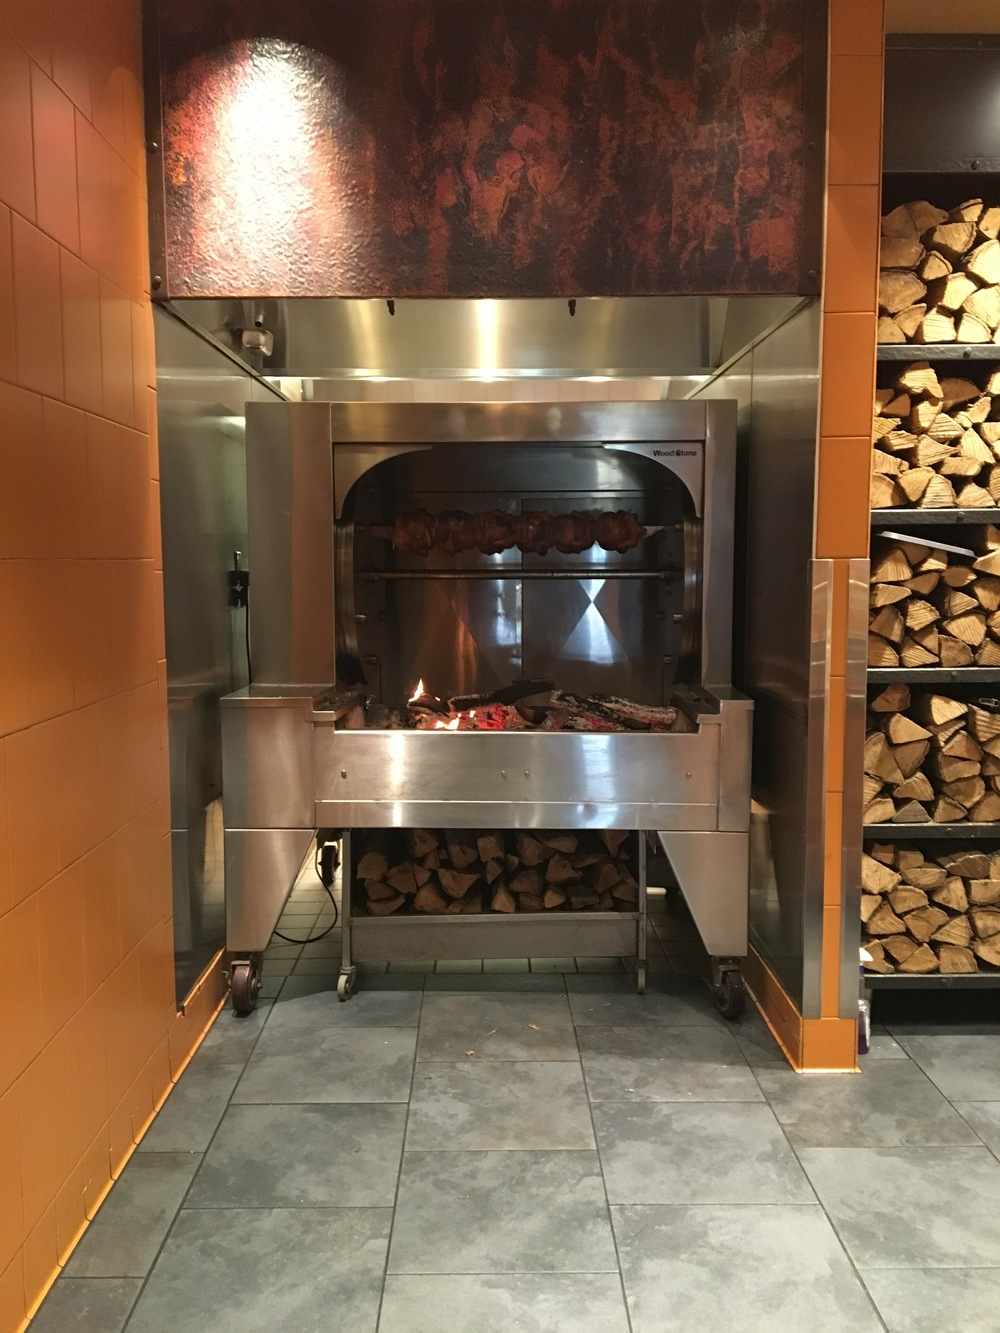 Red & White Oak wood is used for the in-house rotisserie                                                                                                                    Photo by Epicurean Chronicles